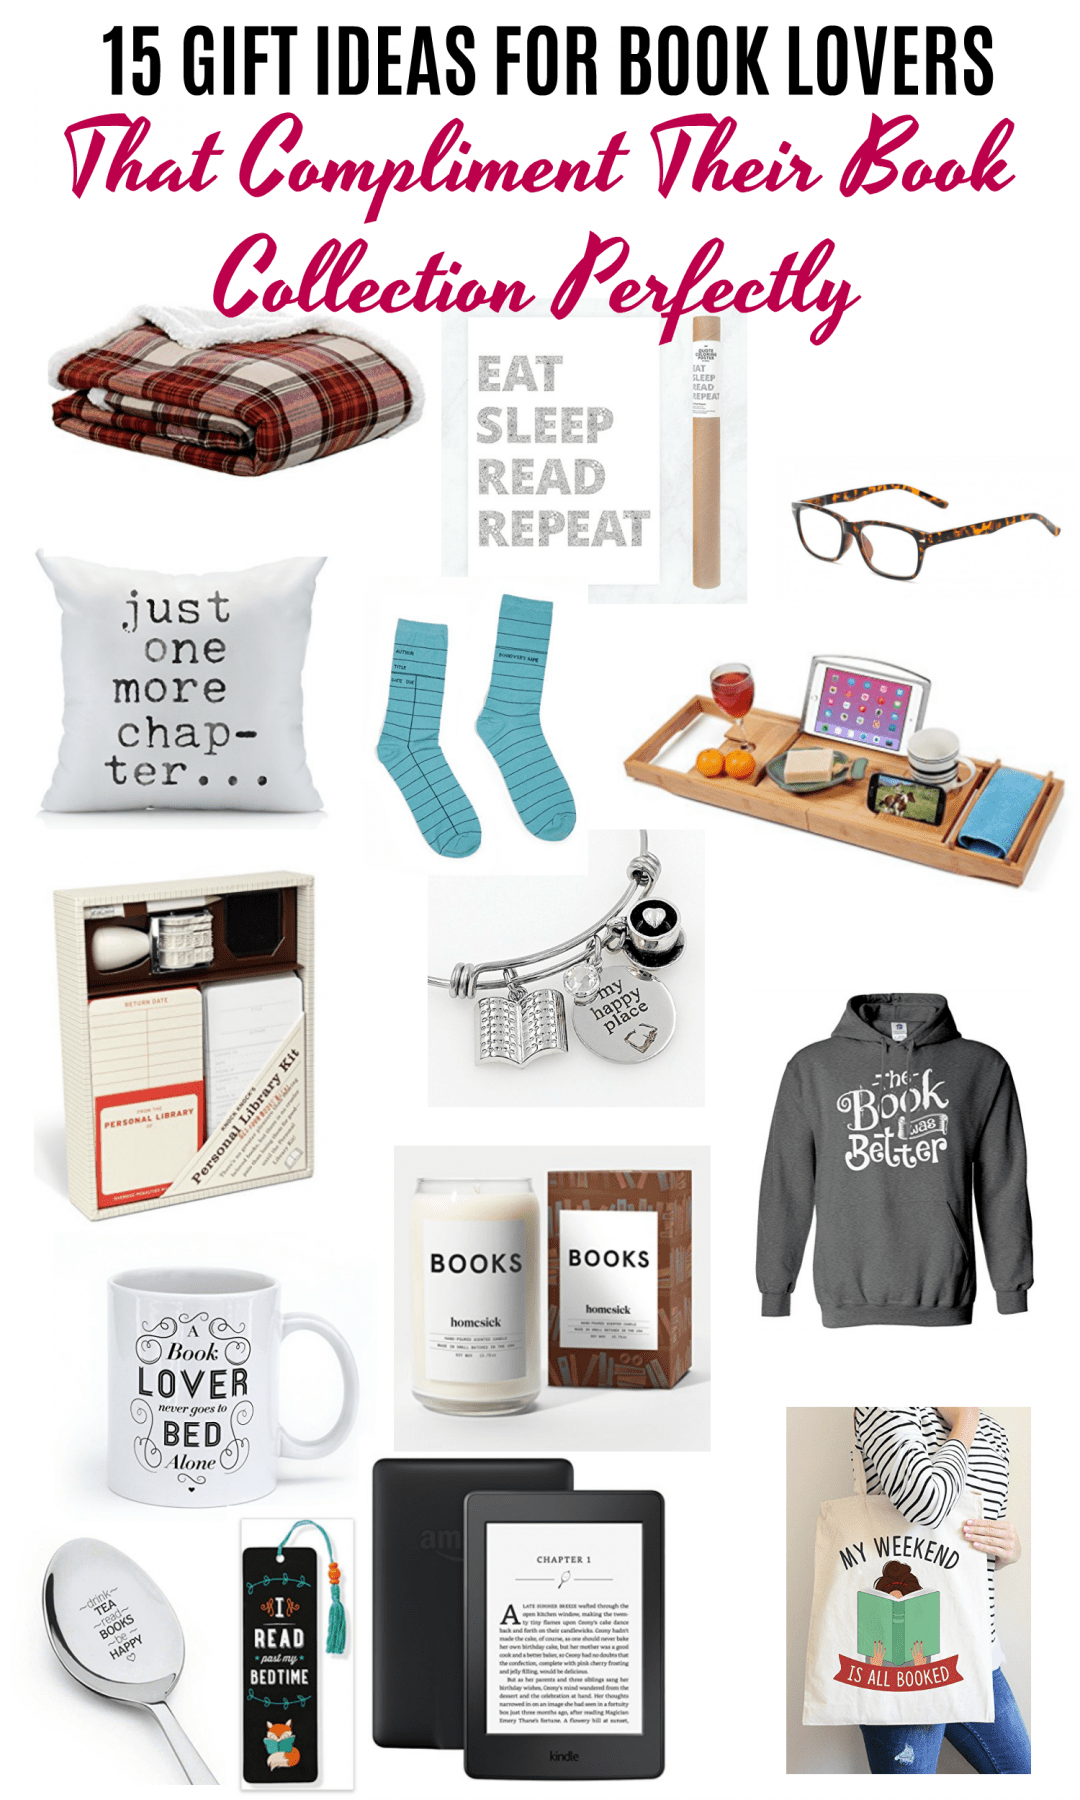 15 gift ideas for book lovers that compliment their book collection